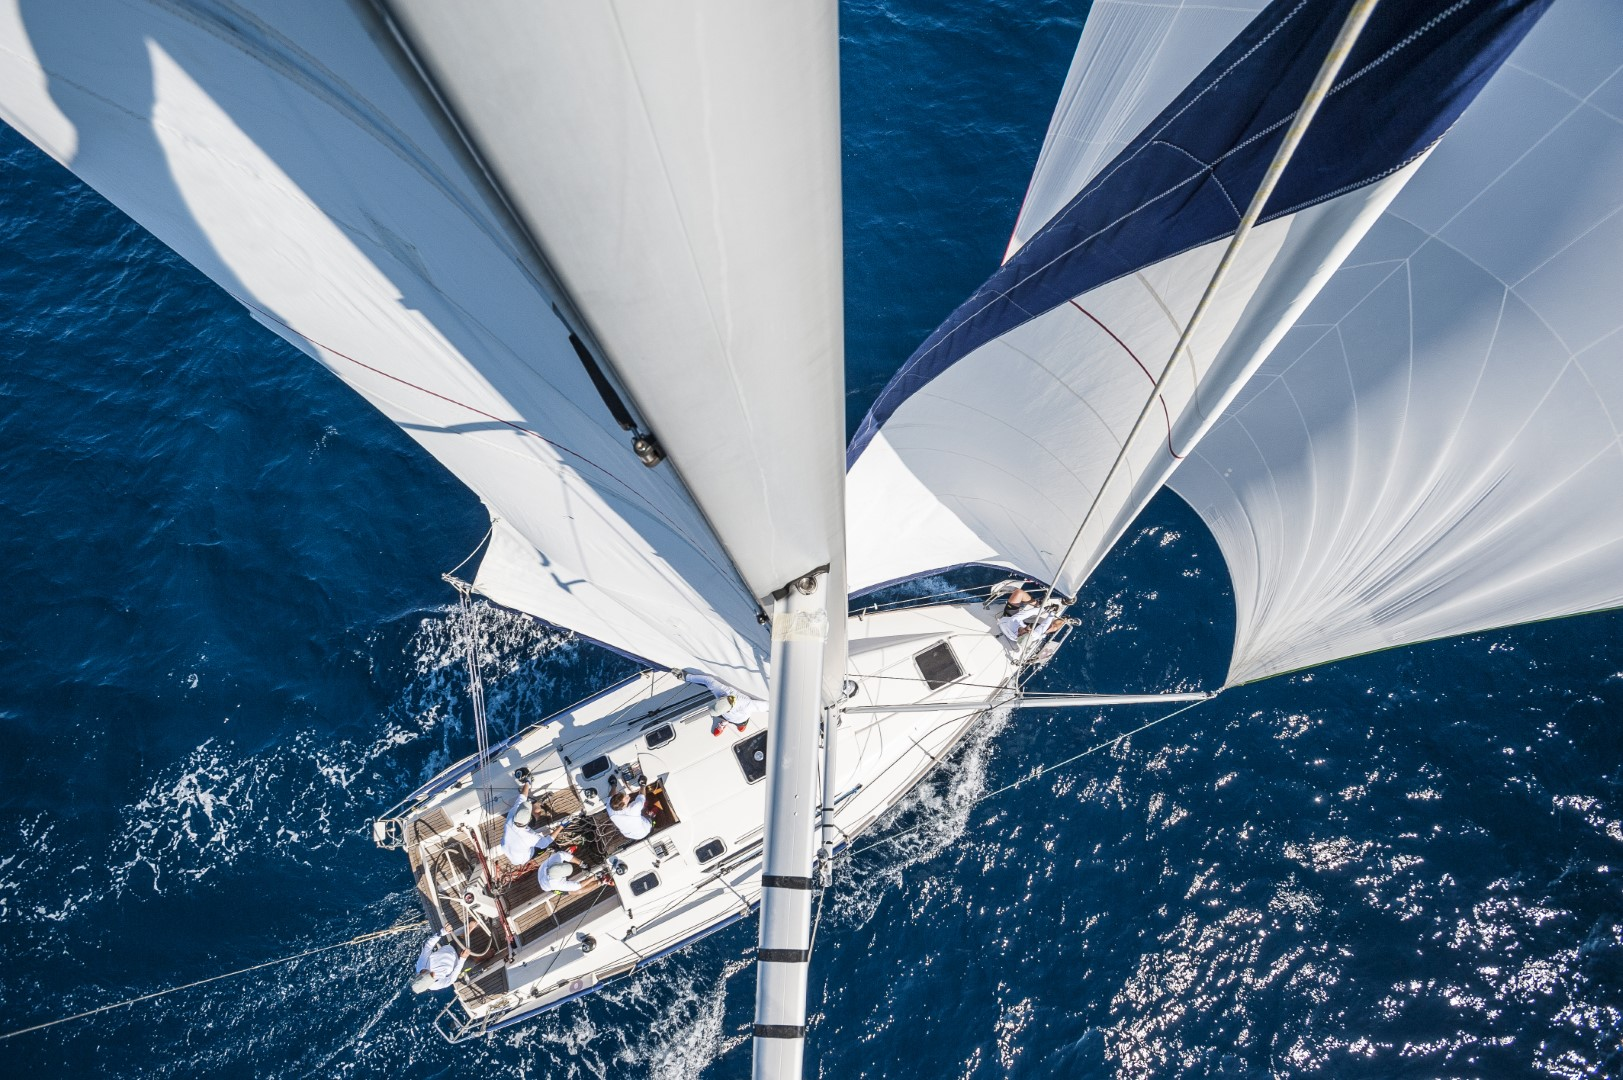 sailing-yacht-charter-boat-sea-skipper